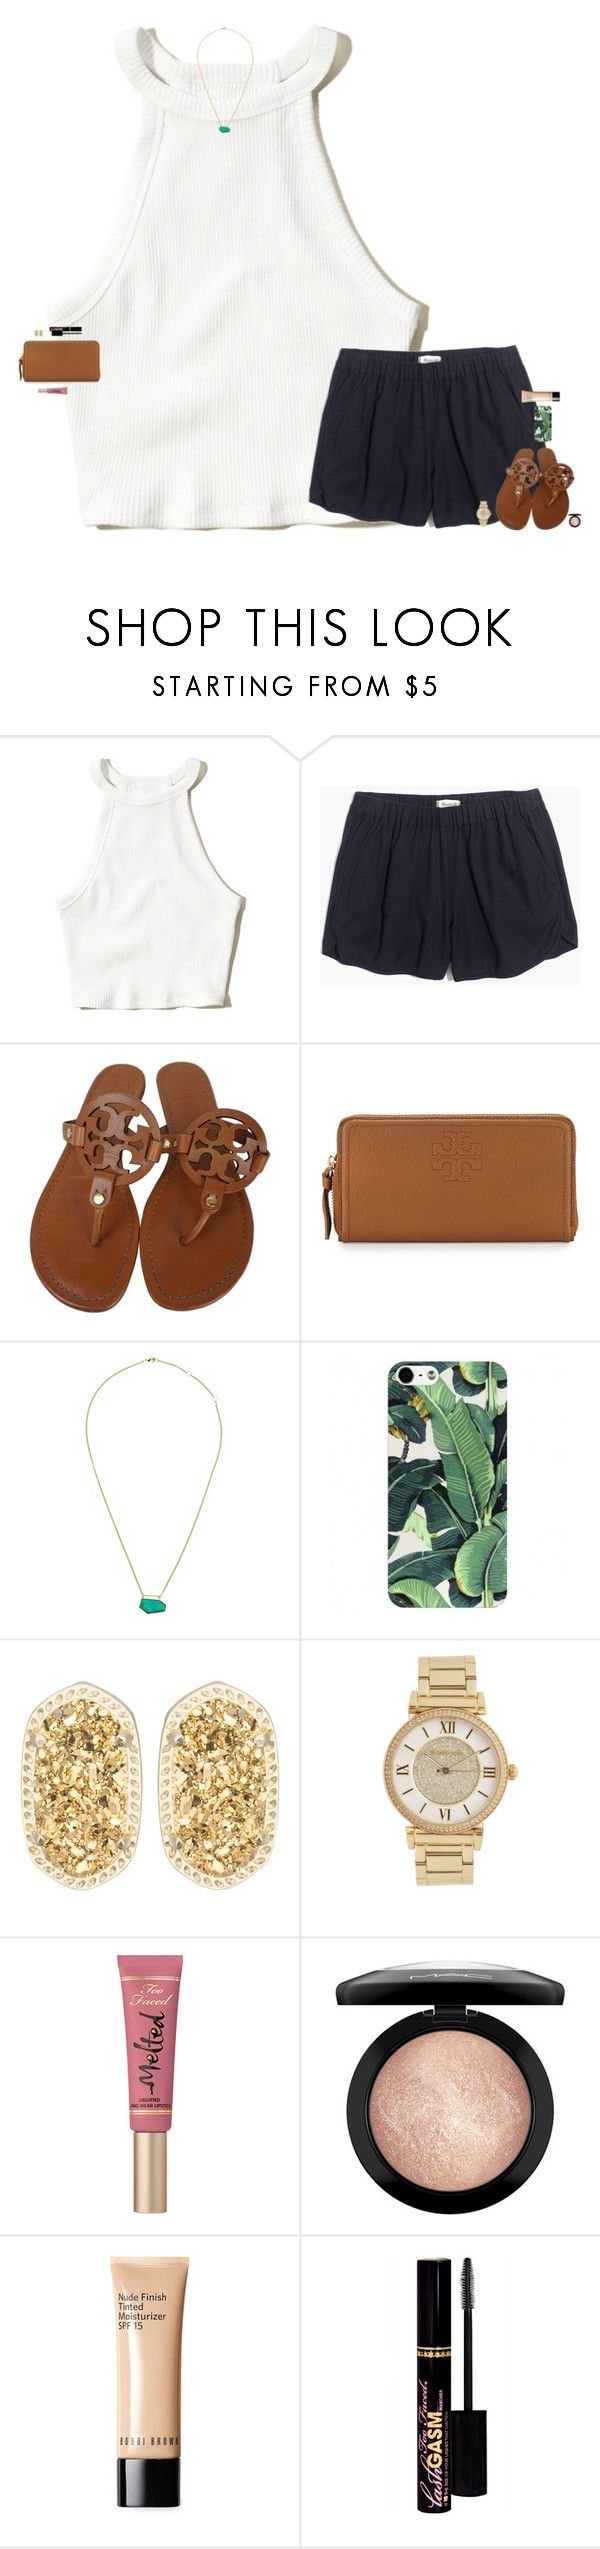 """what's the move"" by maggie-prep ❤ liked on Polyvore featuring Hollister Co., Madewell, Tory Burch, One OAK by Sara, Kendra Scott, Michael Kors, Too Faced Cosmetics, MAC Cosmetics and Bobbi Brown Cosmetics"